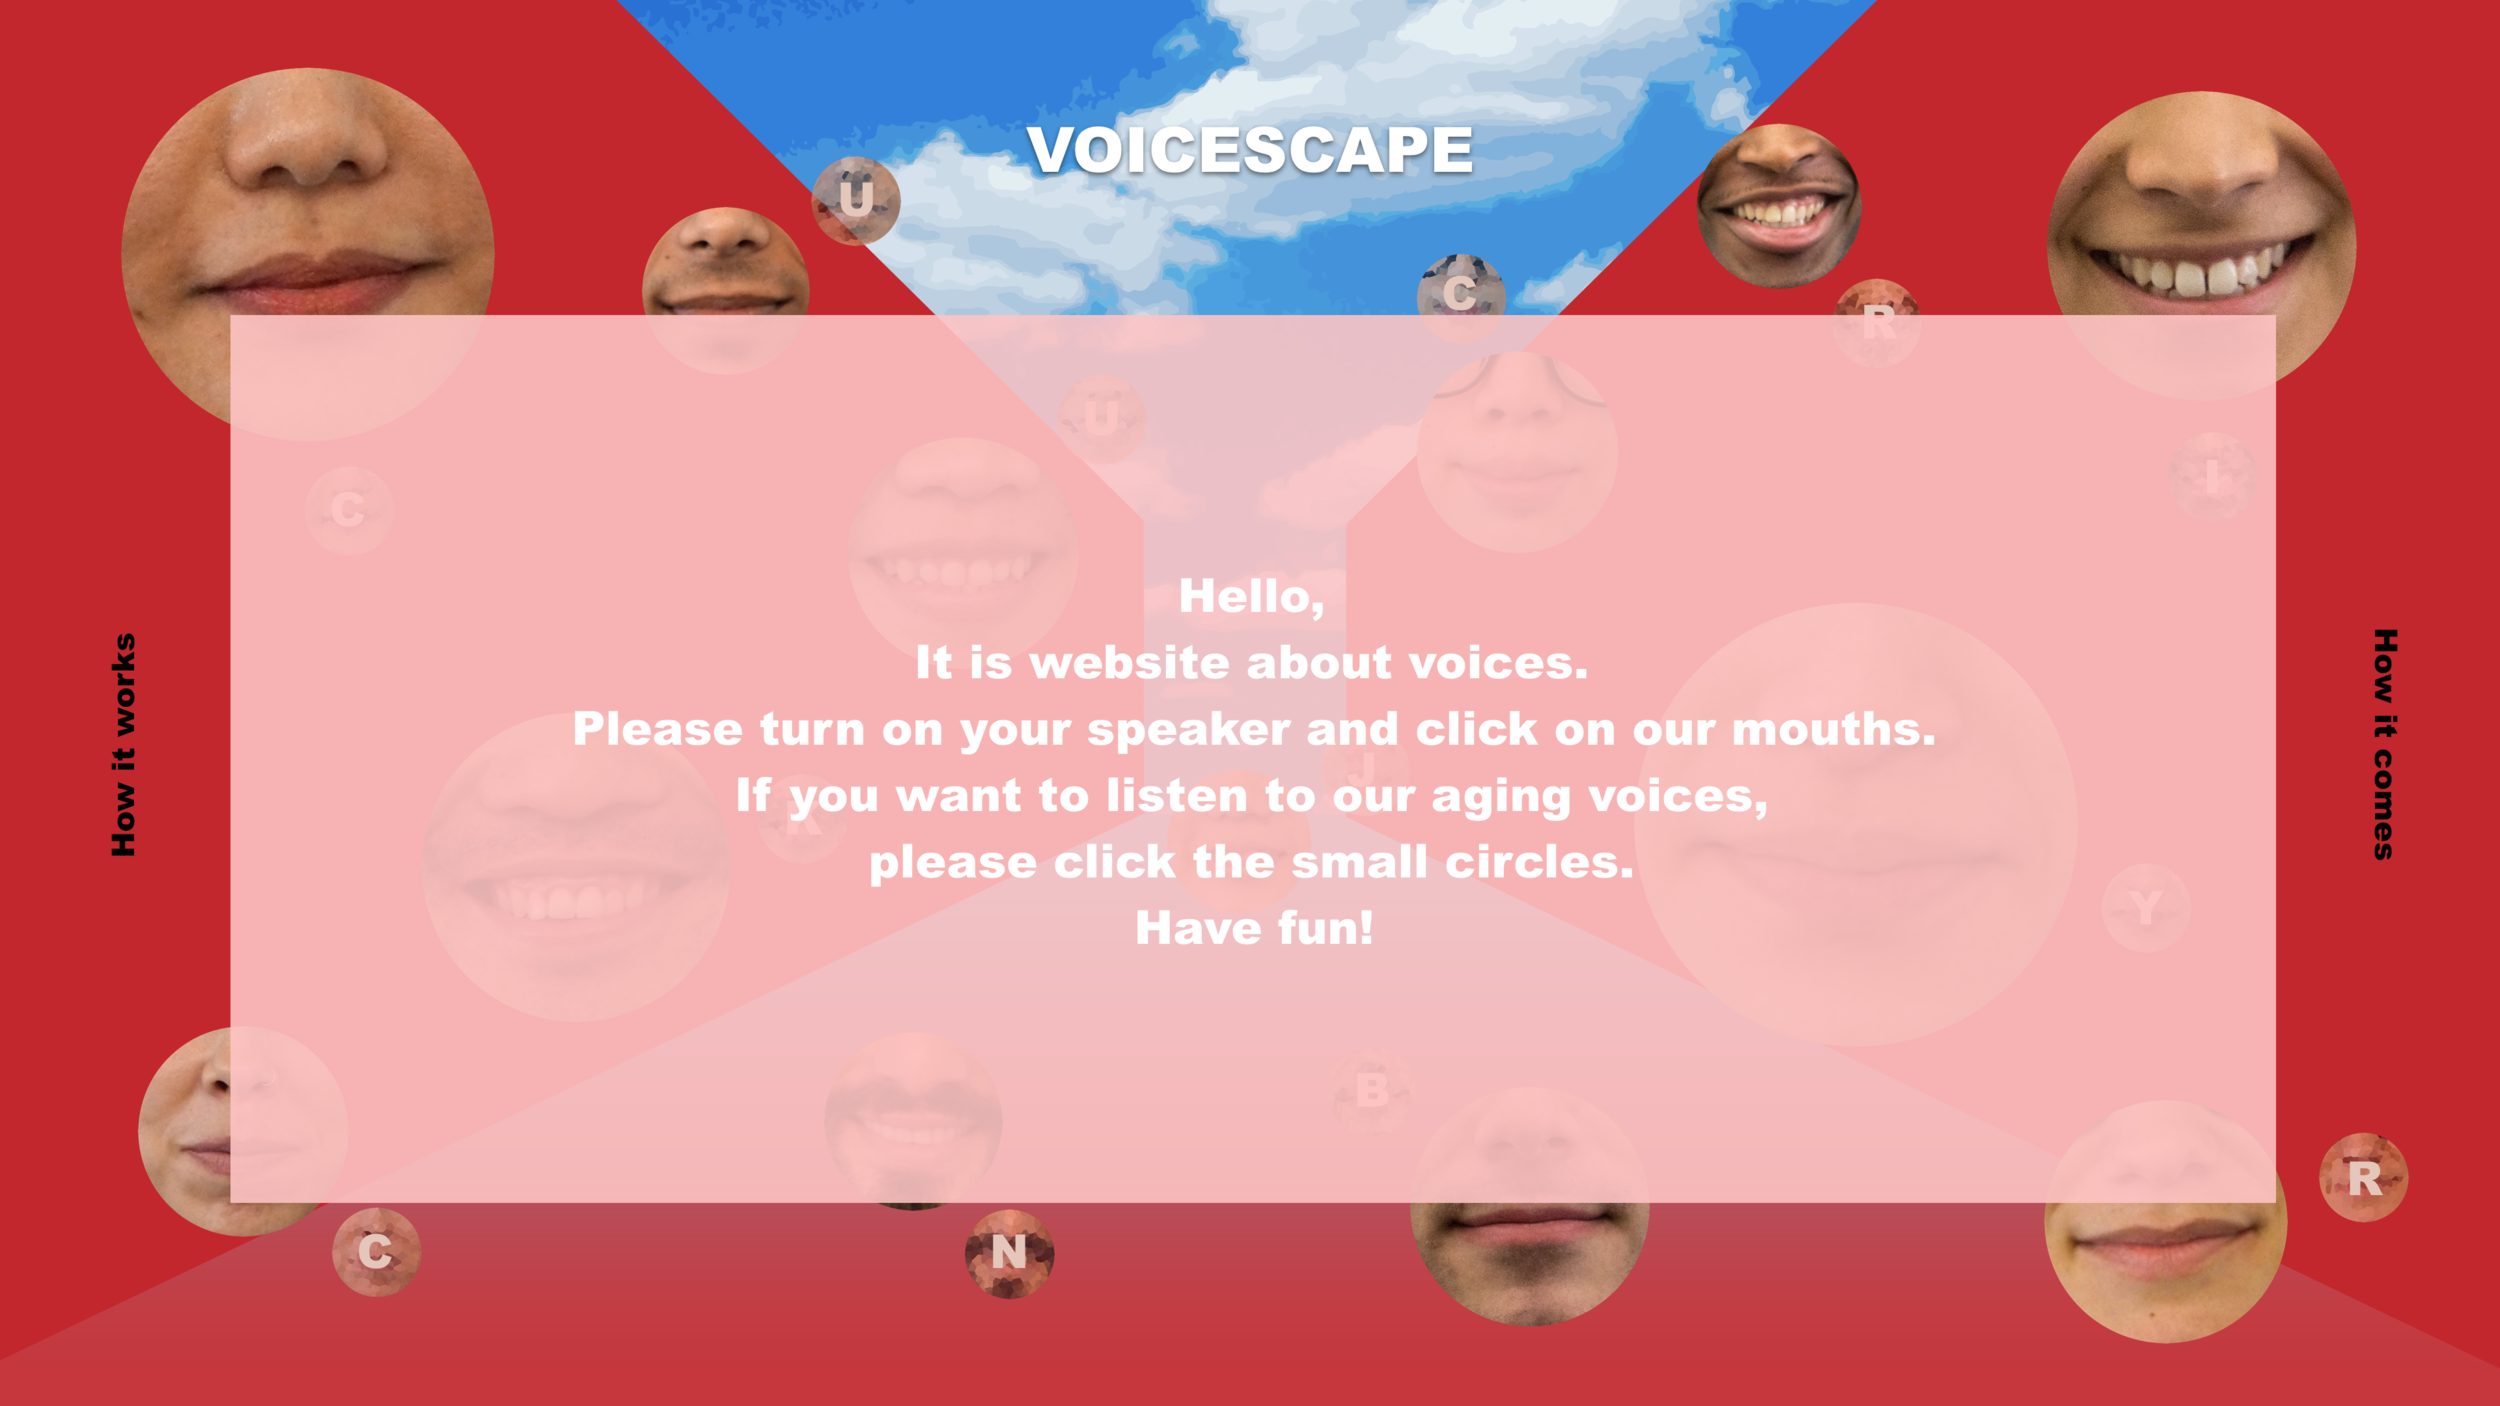 voicescape_work.png